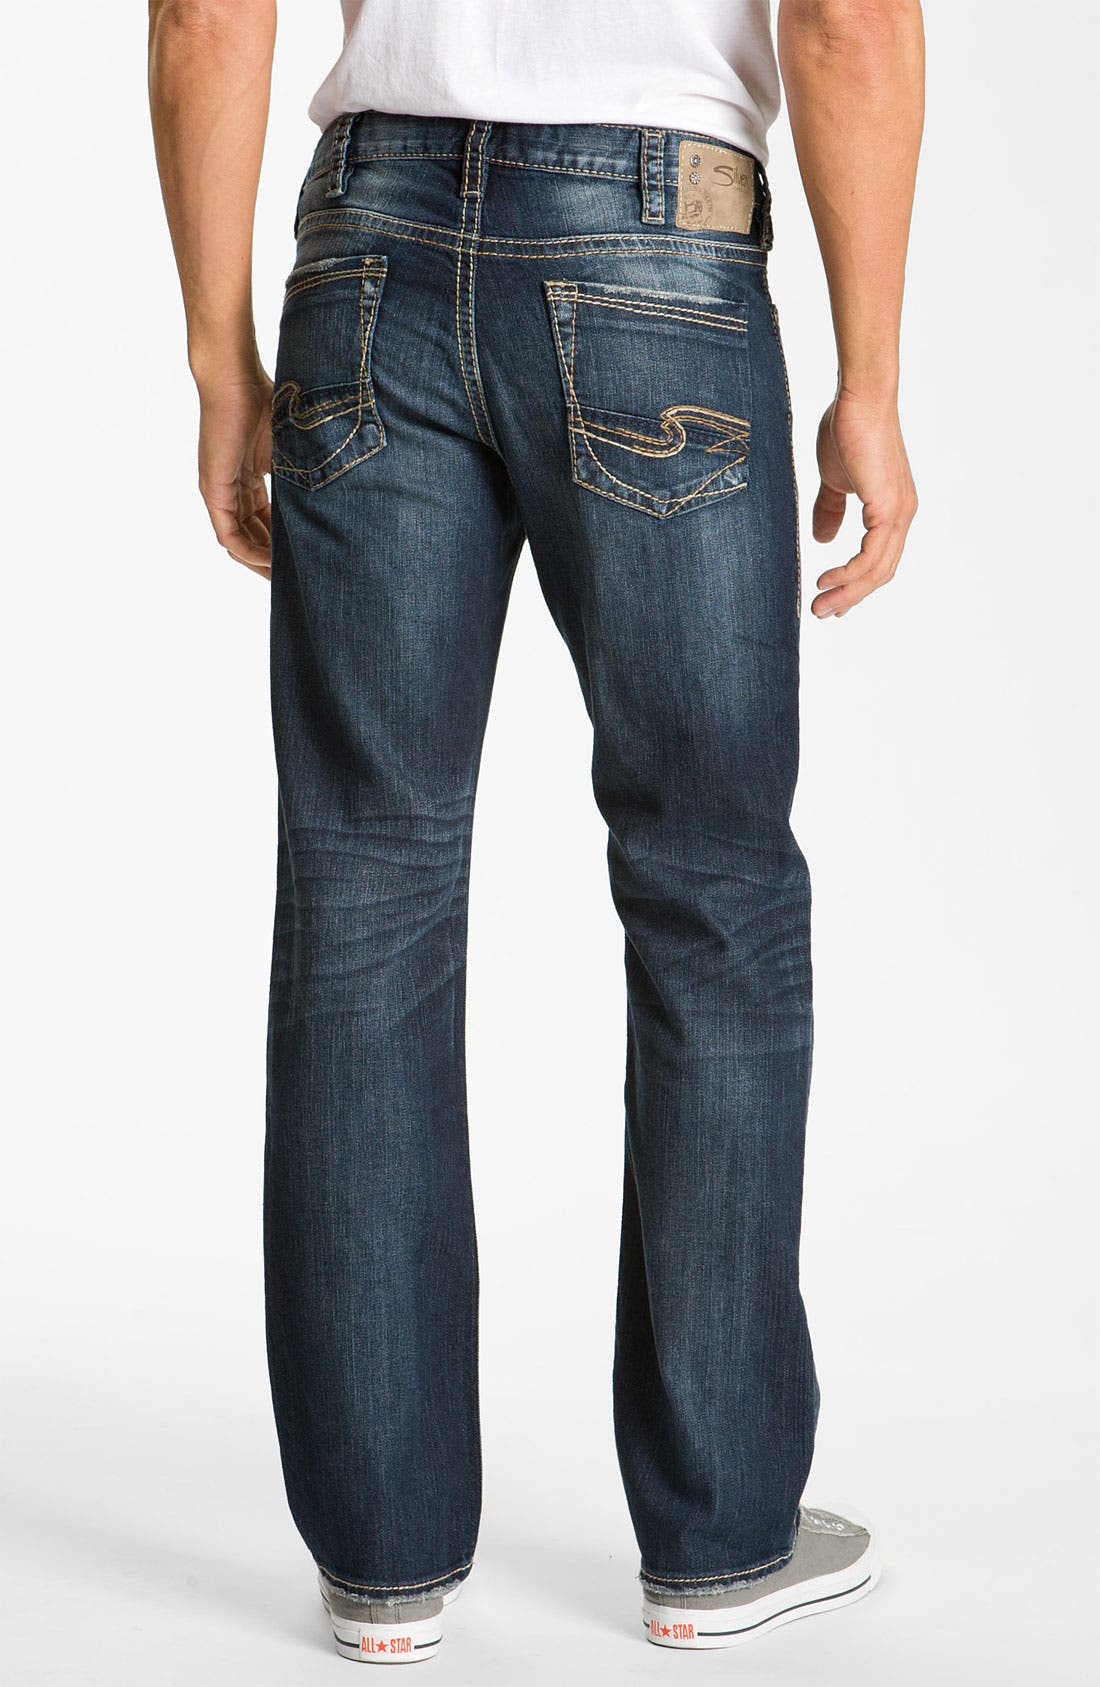 SILVER JEANS CO. 'Grayson Heritage' Straight Leg Jeans, Main, color, 401